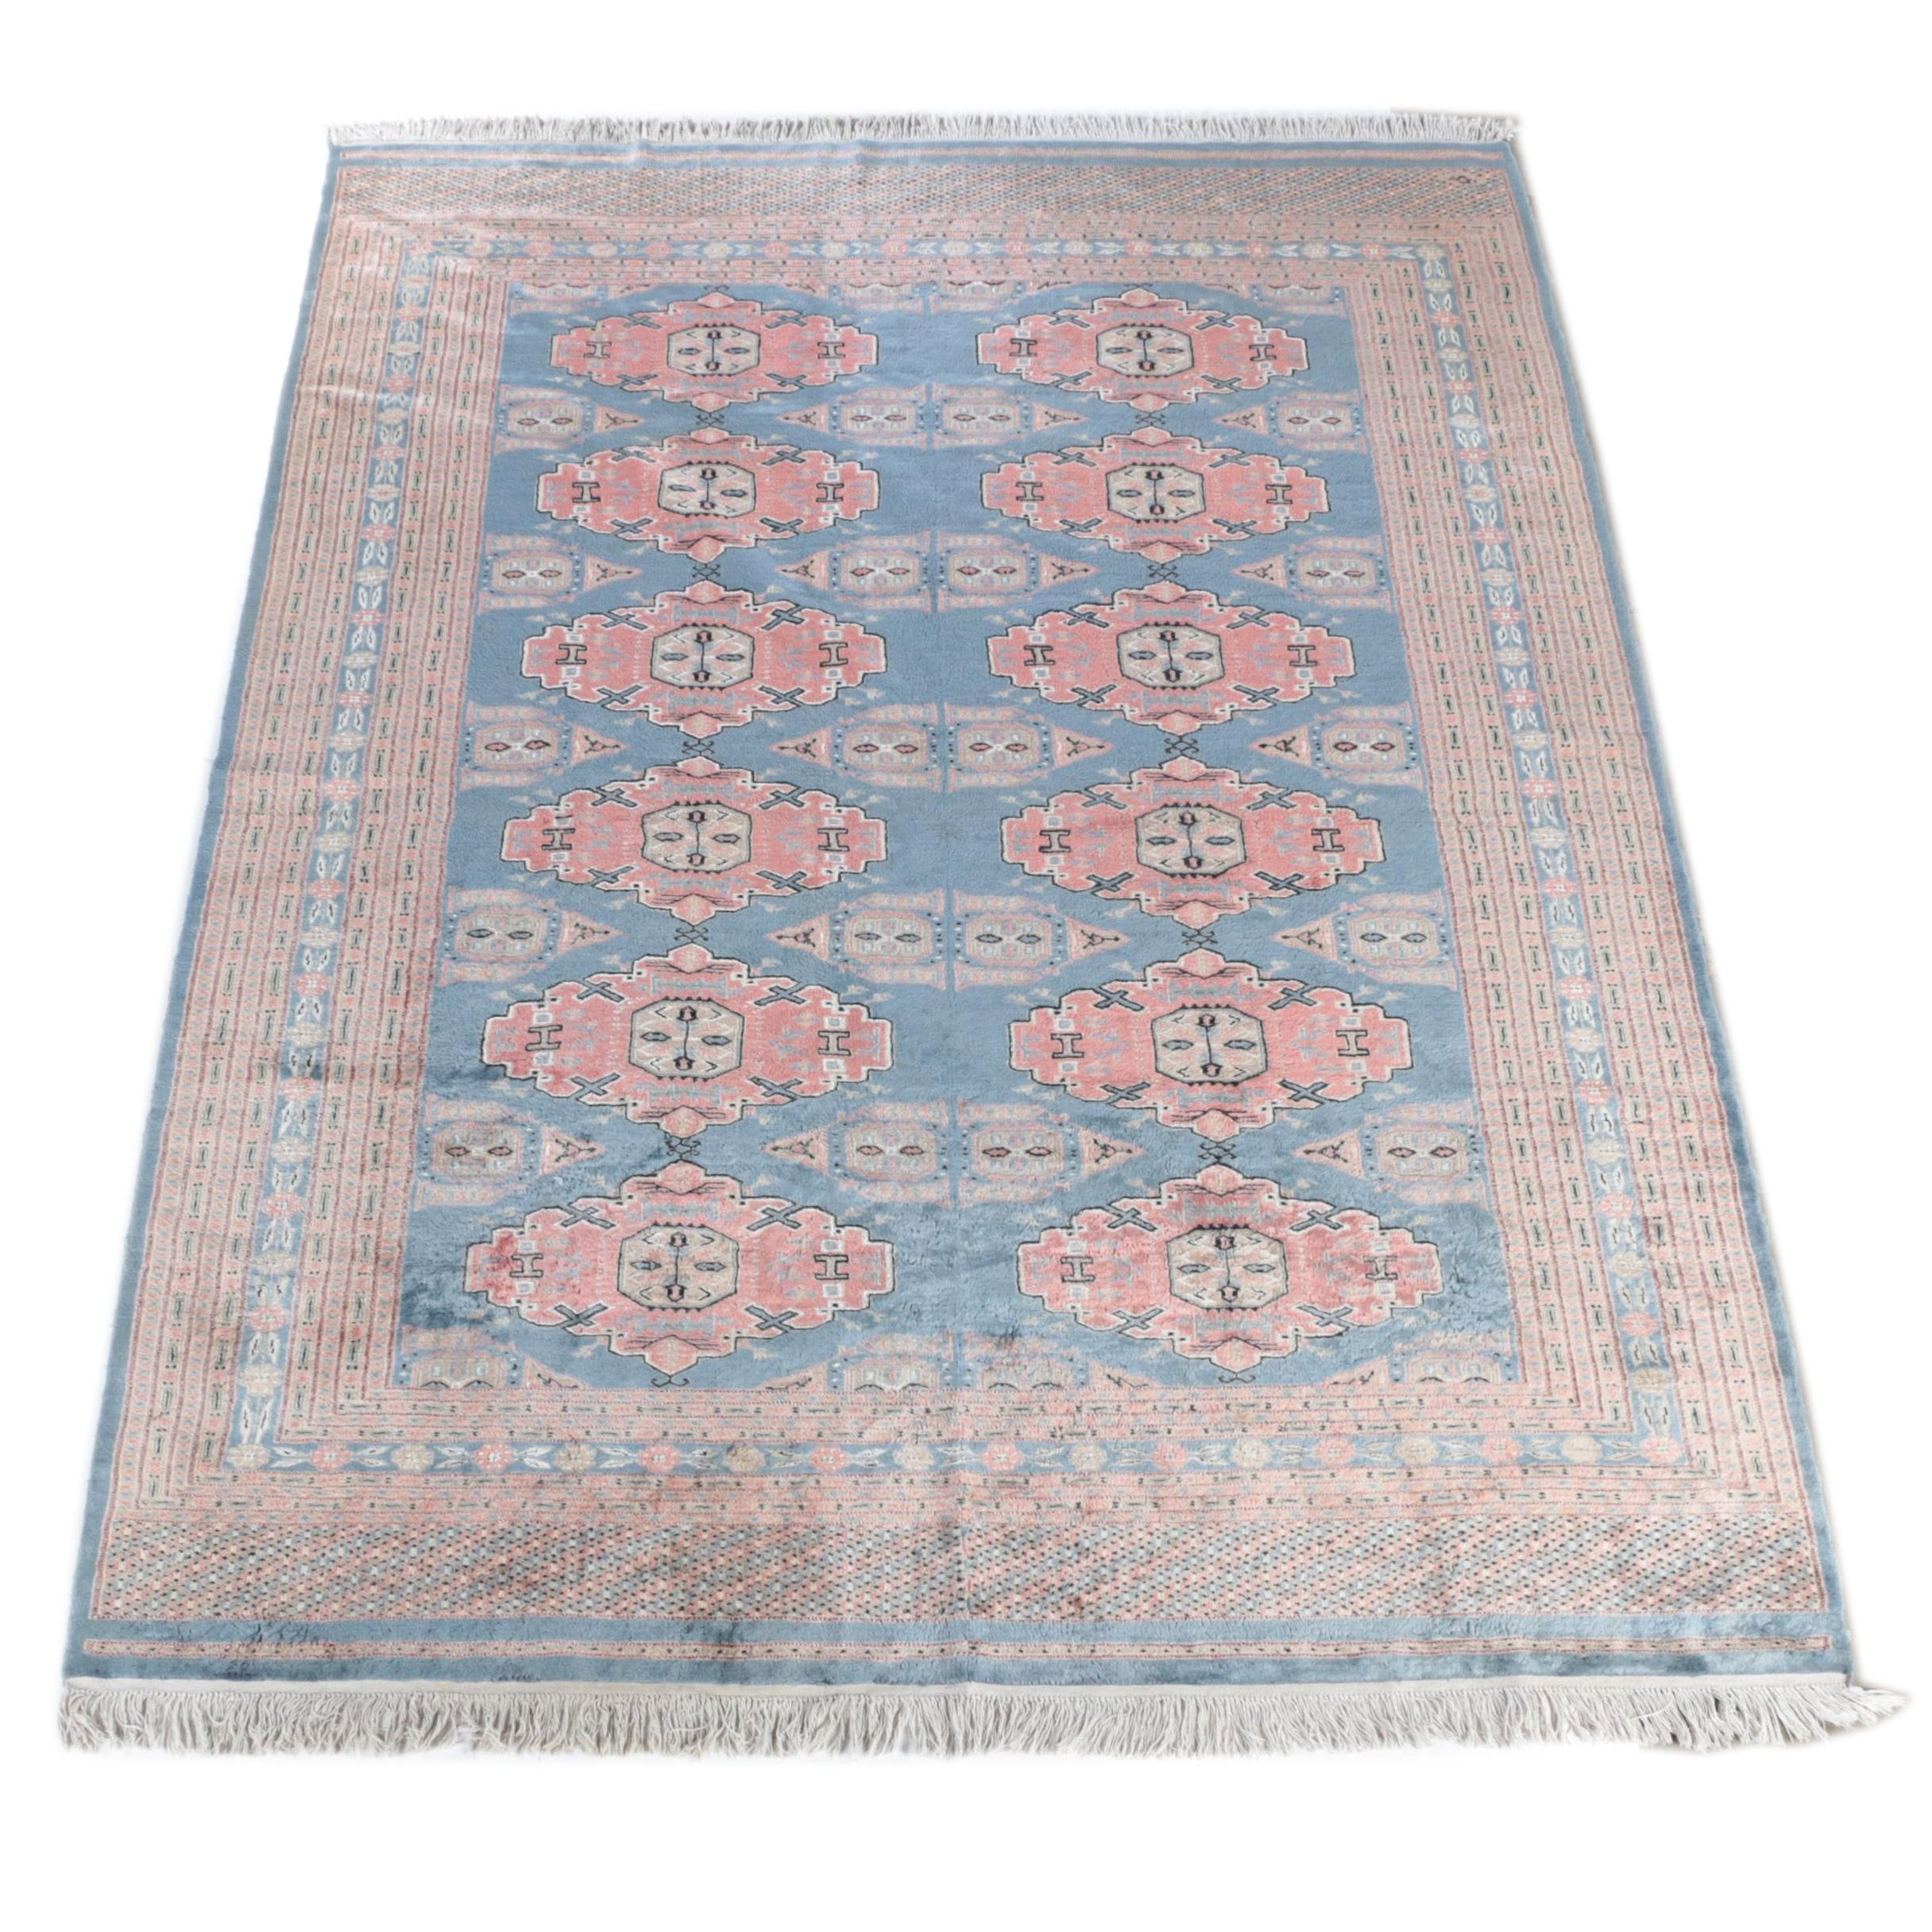 Hand-Knotted Pakistani Bokhara Wool Room Size Rug